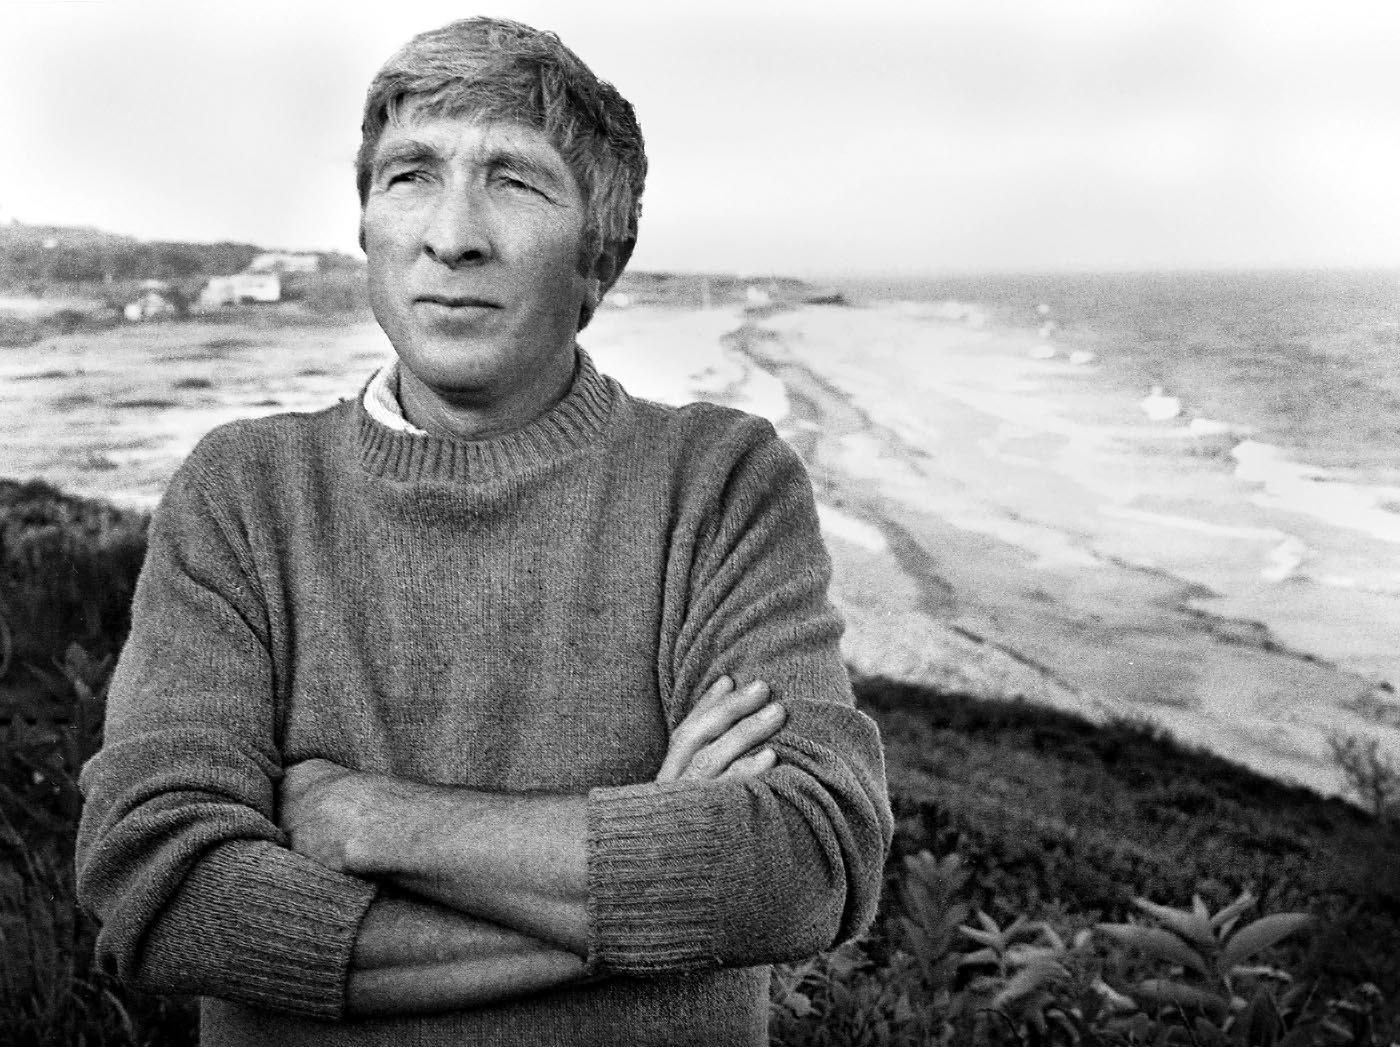 john updikes View the profiles of professionals named john updike on linkedin there are 10+ professionals named john updike, who use linkedin to exchange information, ideas, and opportunities.